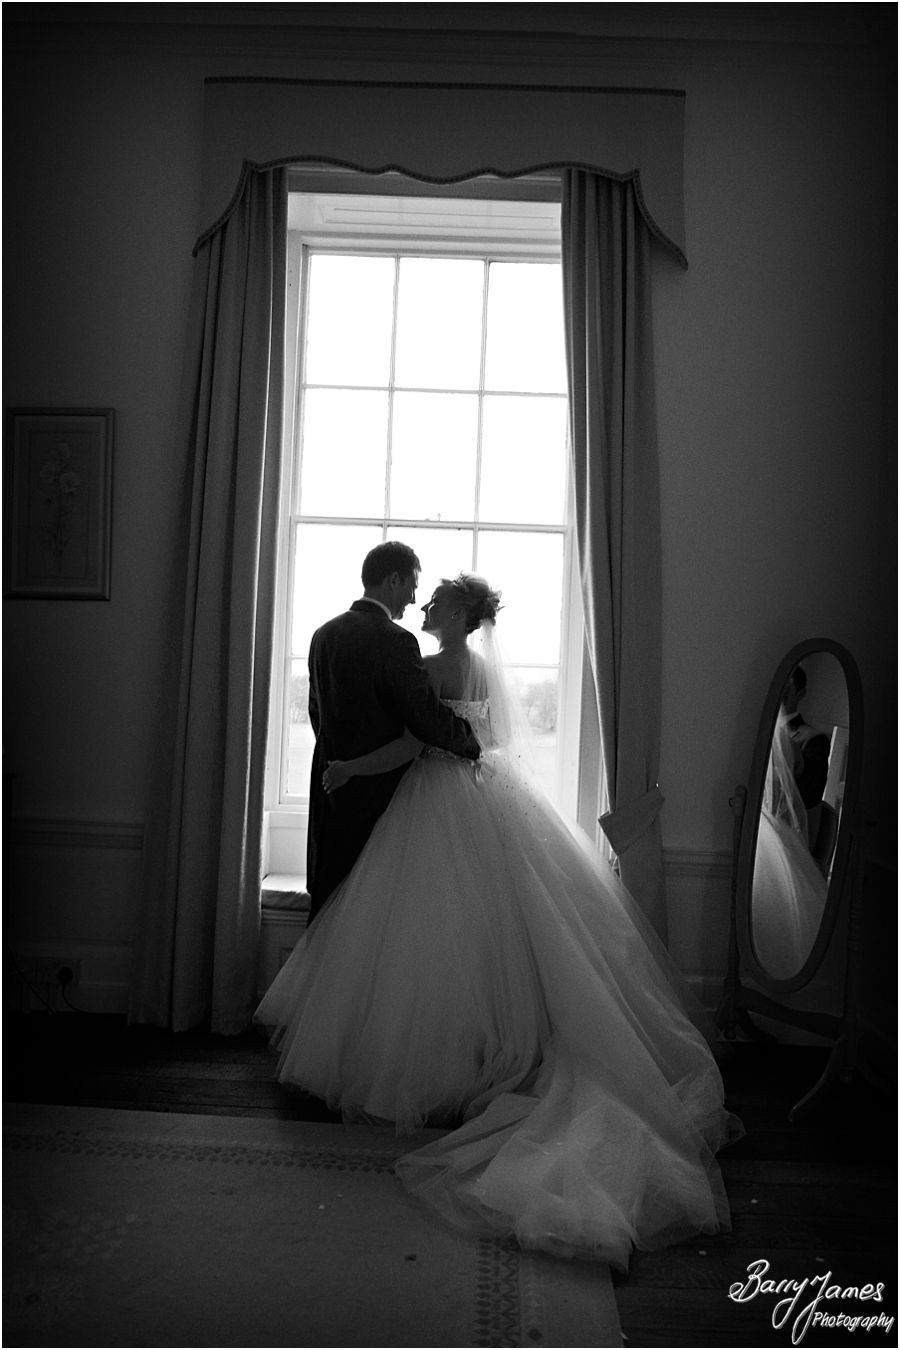 Candid storytelling wedding photography of a Somerford Hall weddings in Brewood by Professional Wedding Photographer Barry James